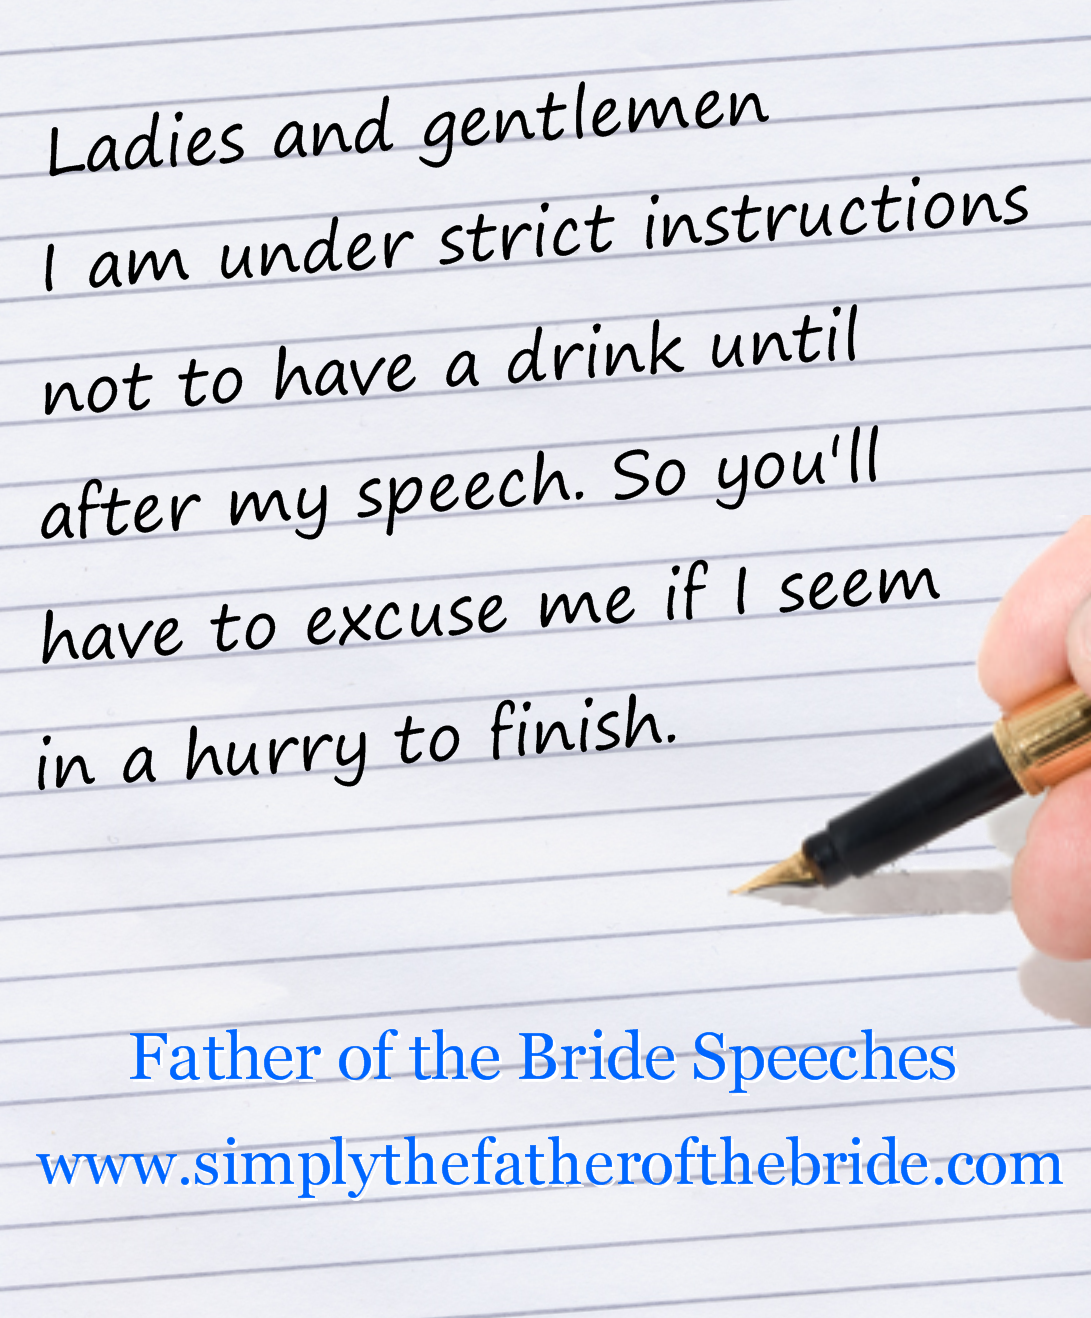 Father Of The Bride Speeches …